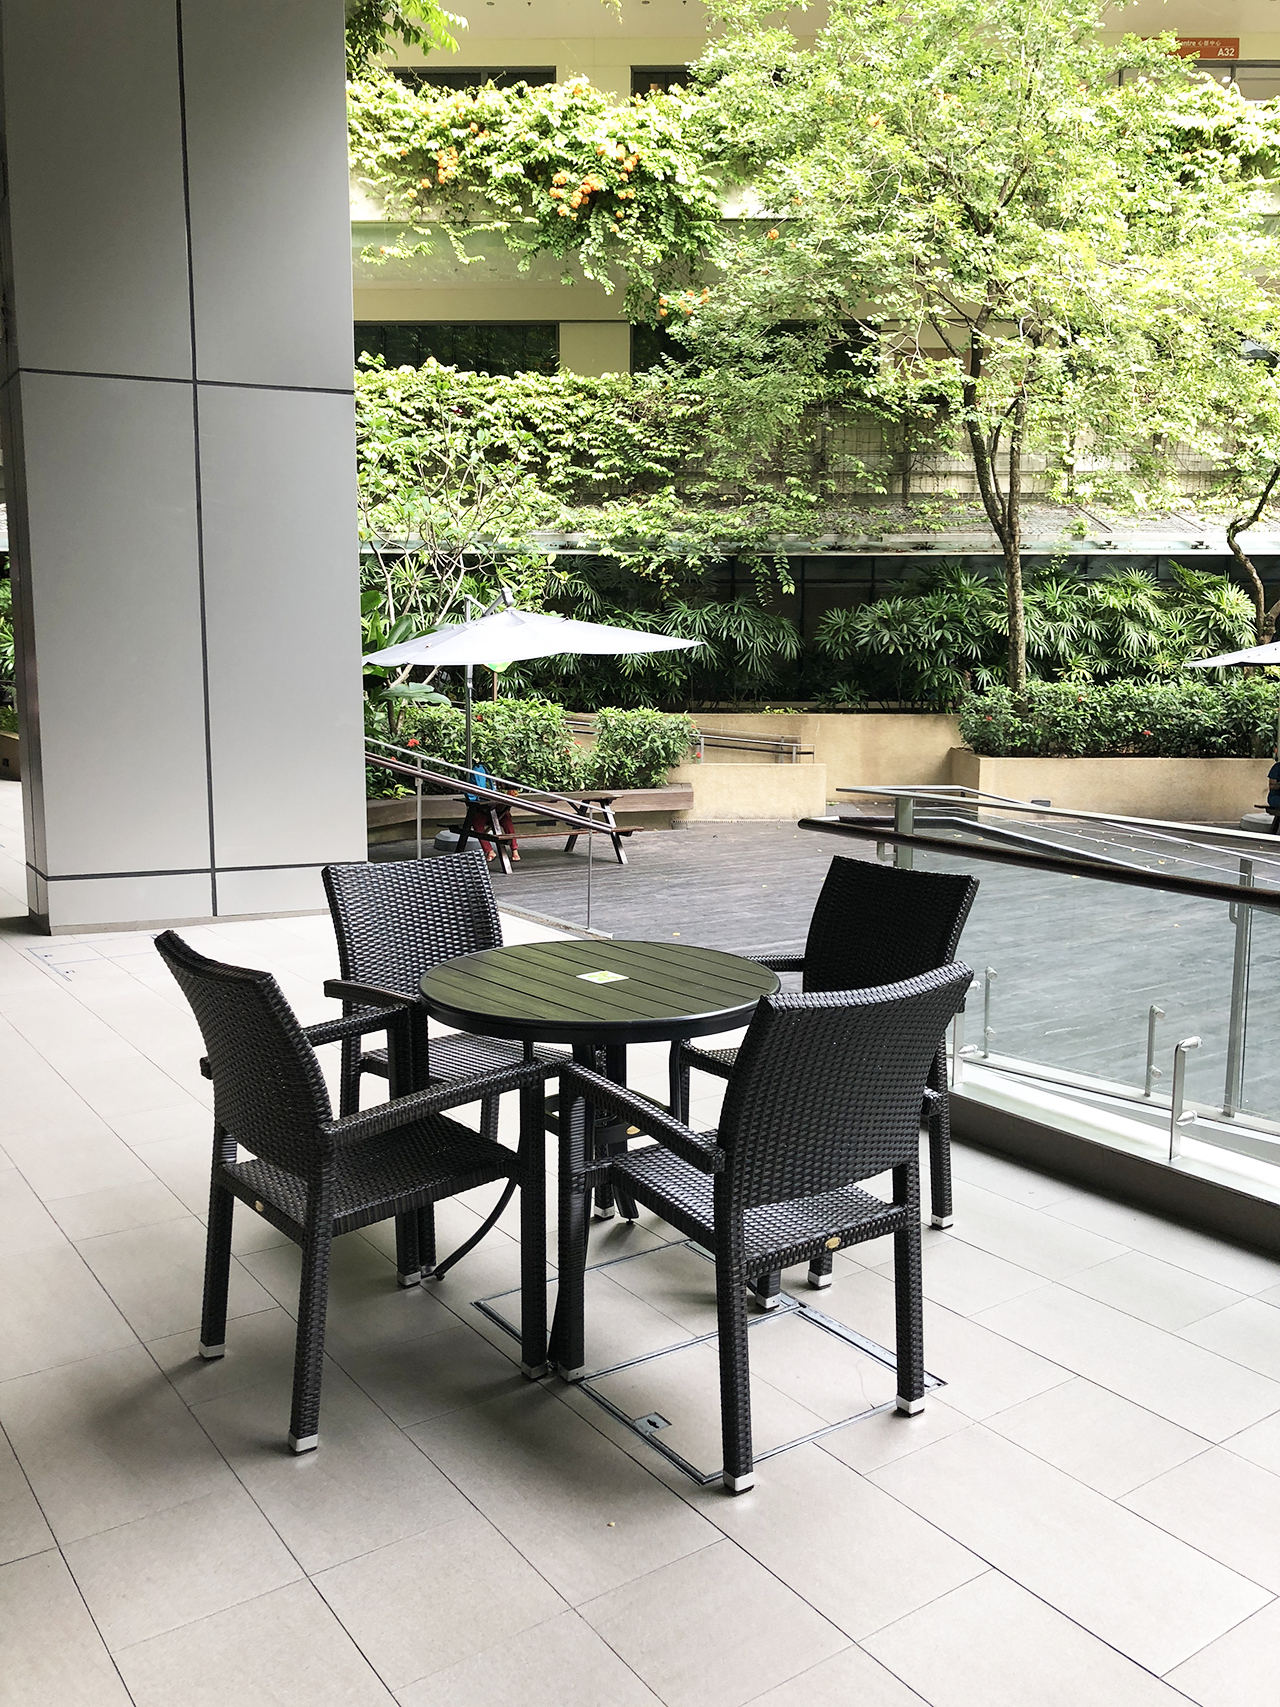 Khoo Teck Puat Hospital (Public Area) - Yishun | Product Seen: [Maldives Outdoor Armchair & Hiro Outdoor Dining Table – Round]